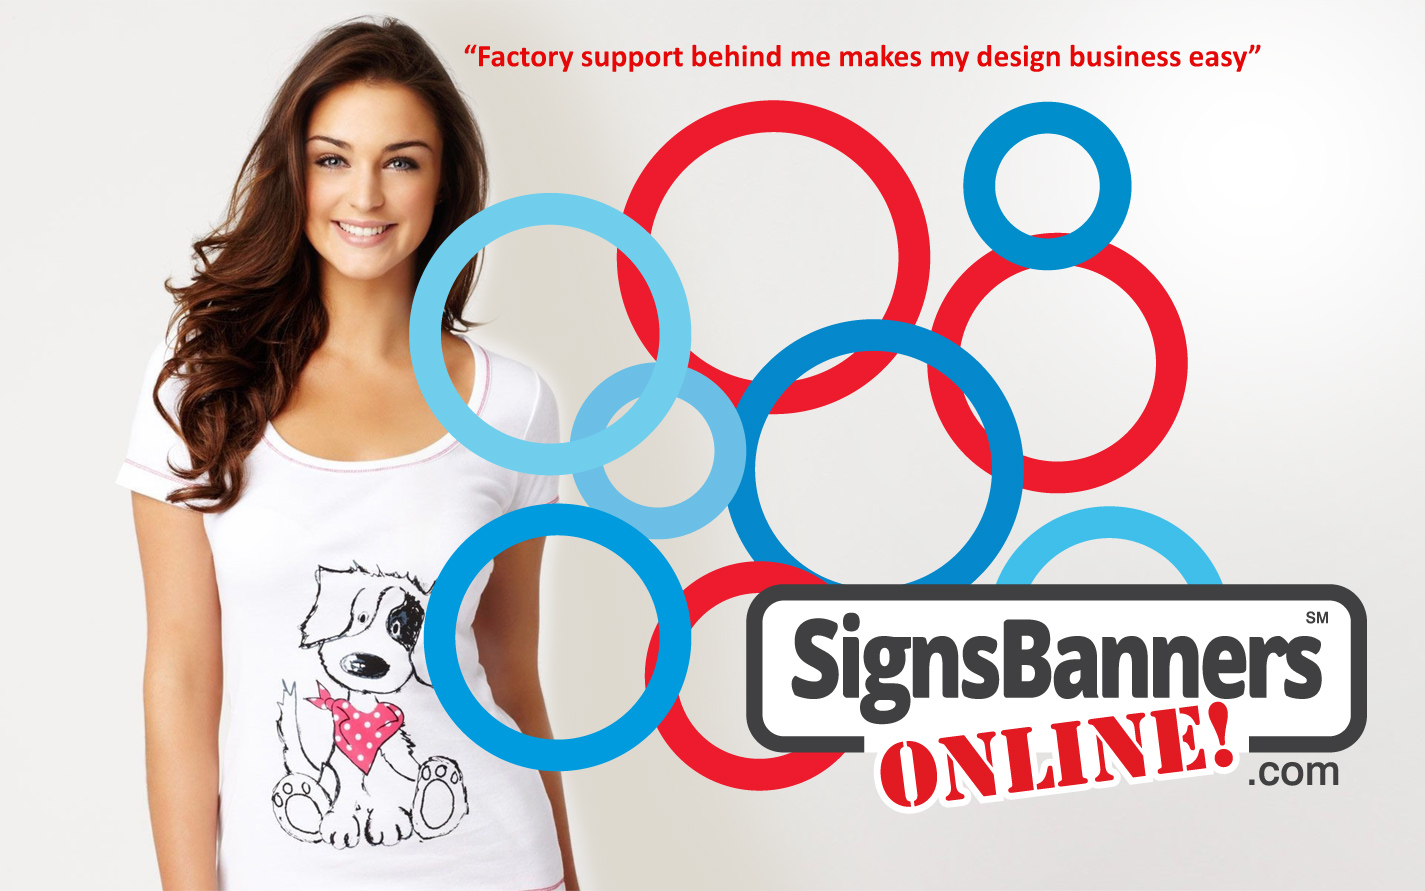 Signs Banner Online factory support behind me makes my design business easy